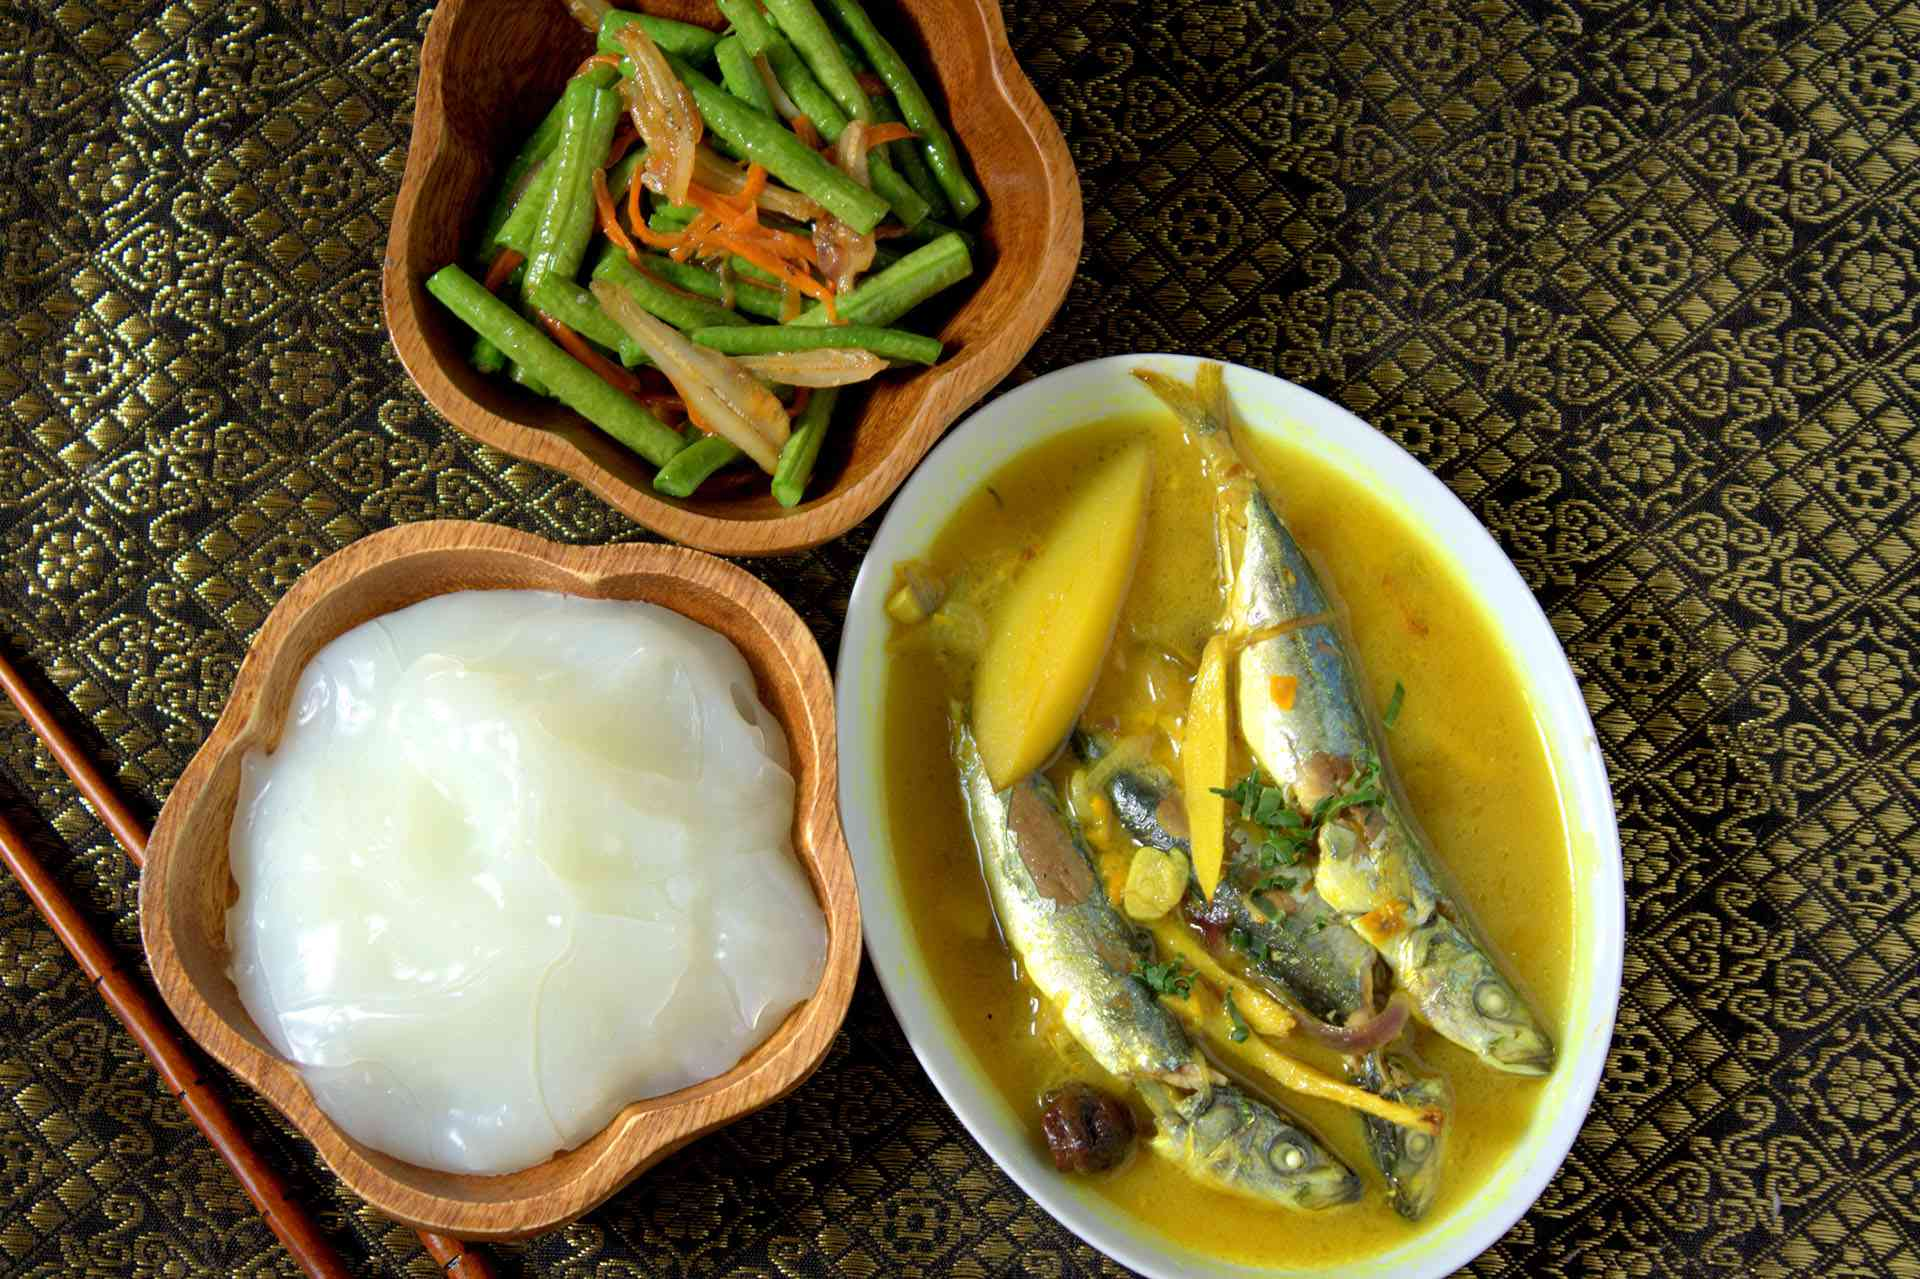 Ambuyat with other foods, Borneo